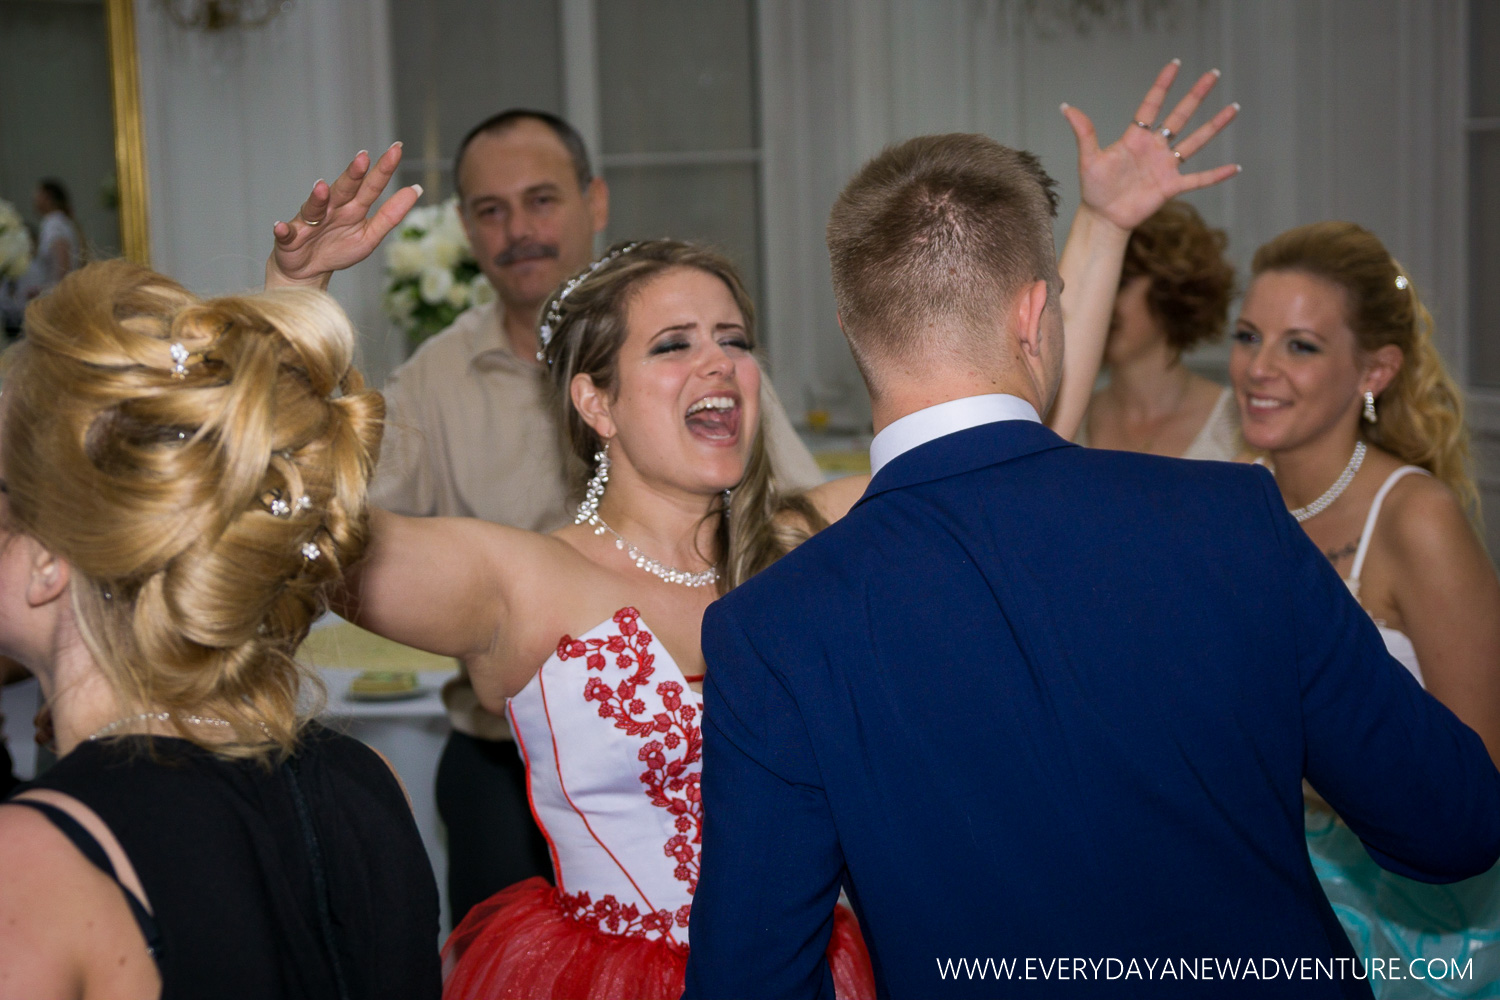 [SqSp1500-107] Budapest - Inez and Arni's Wedding!-680.jpg